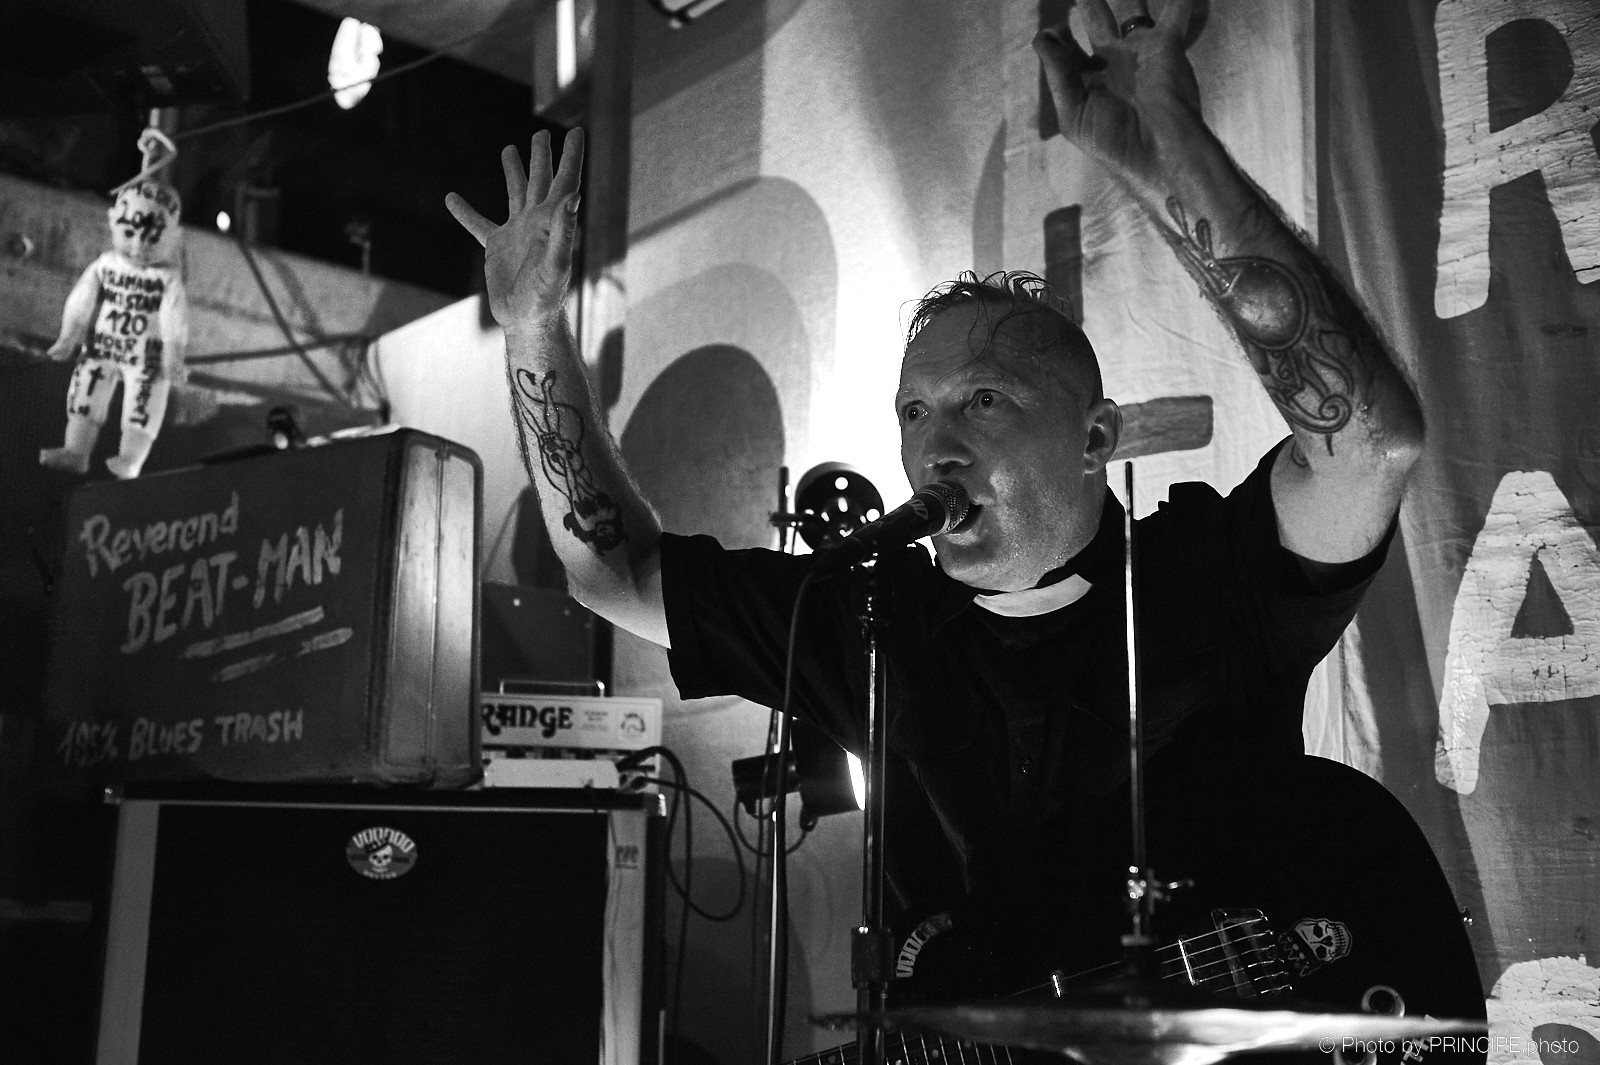 Reverend Beat-Man @ Café Kairo